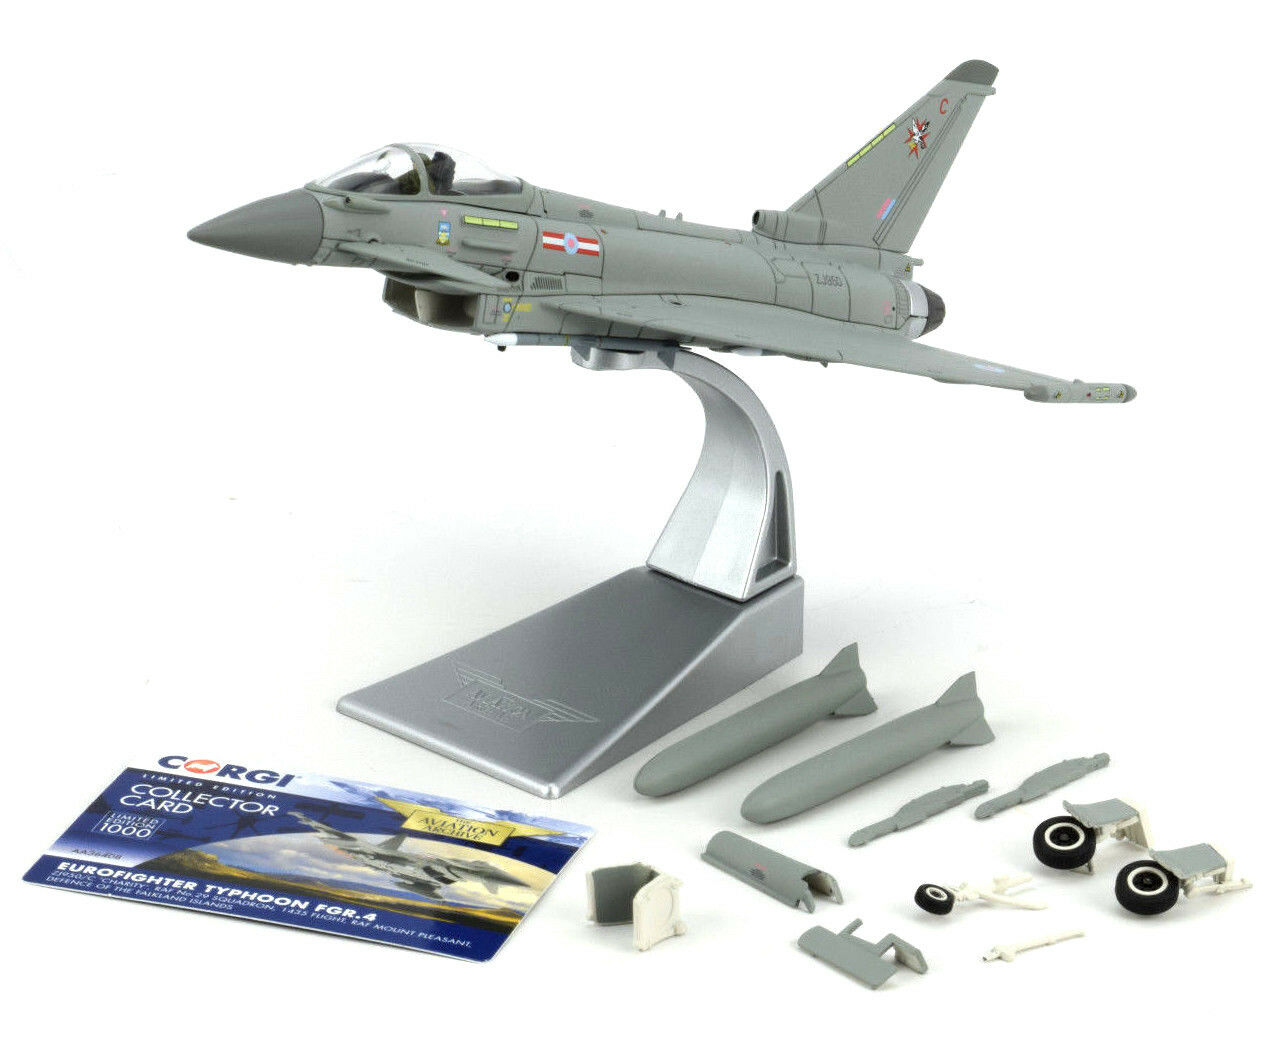 CORGI Eurofighter Typhoon FGR.4 - Falkland Islands 1 72 Die-cast Avion AA36408